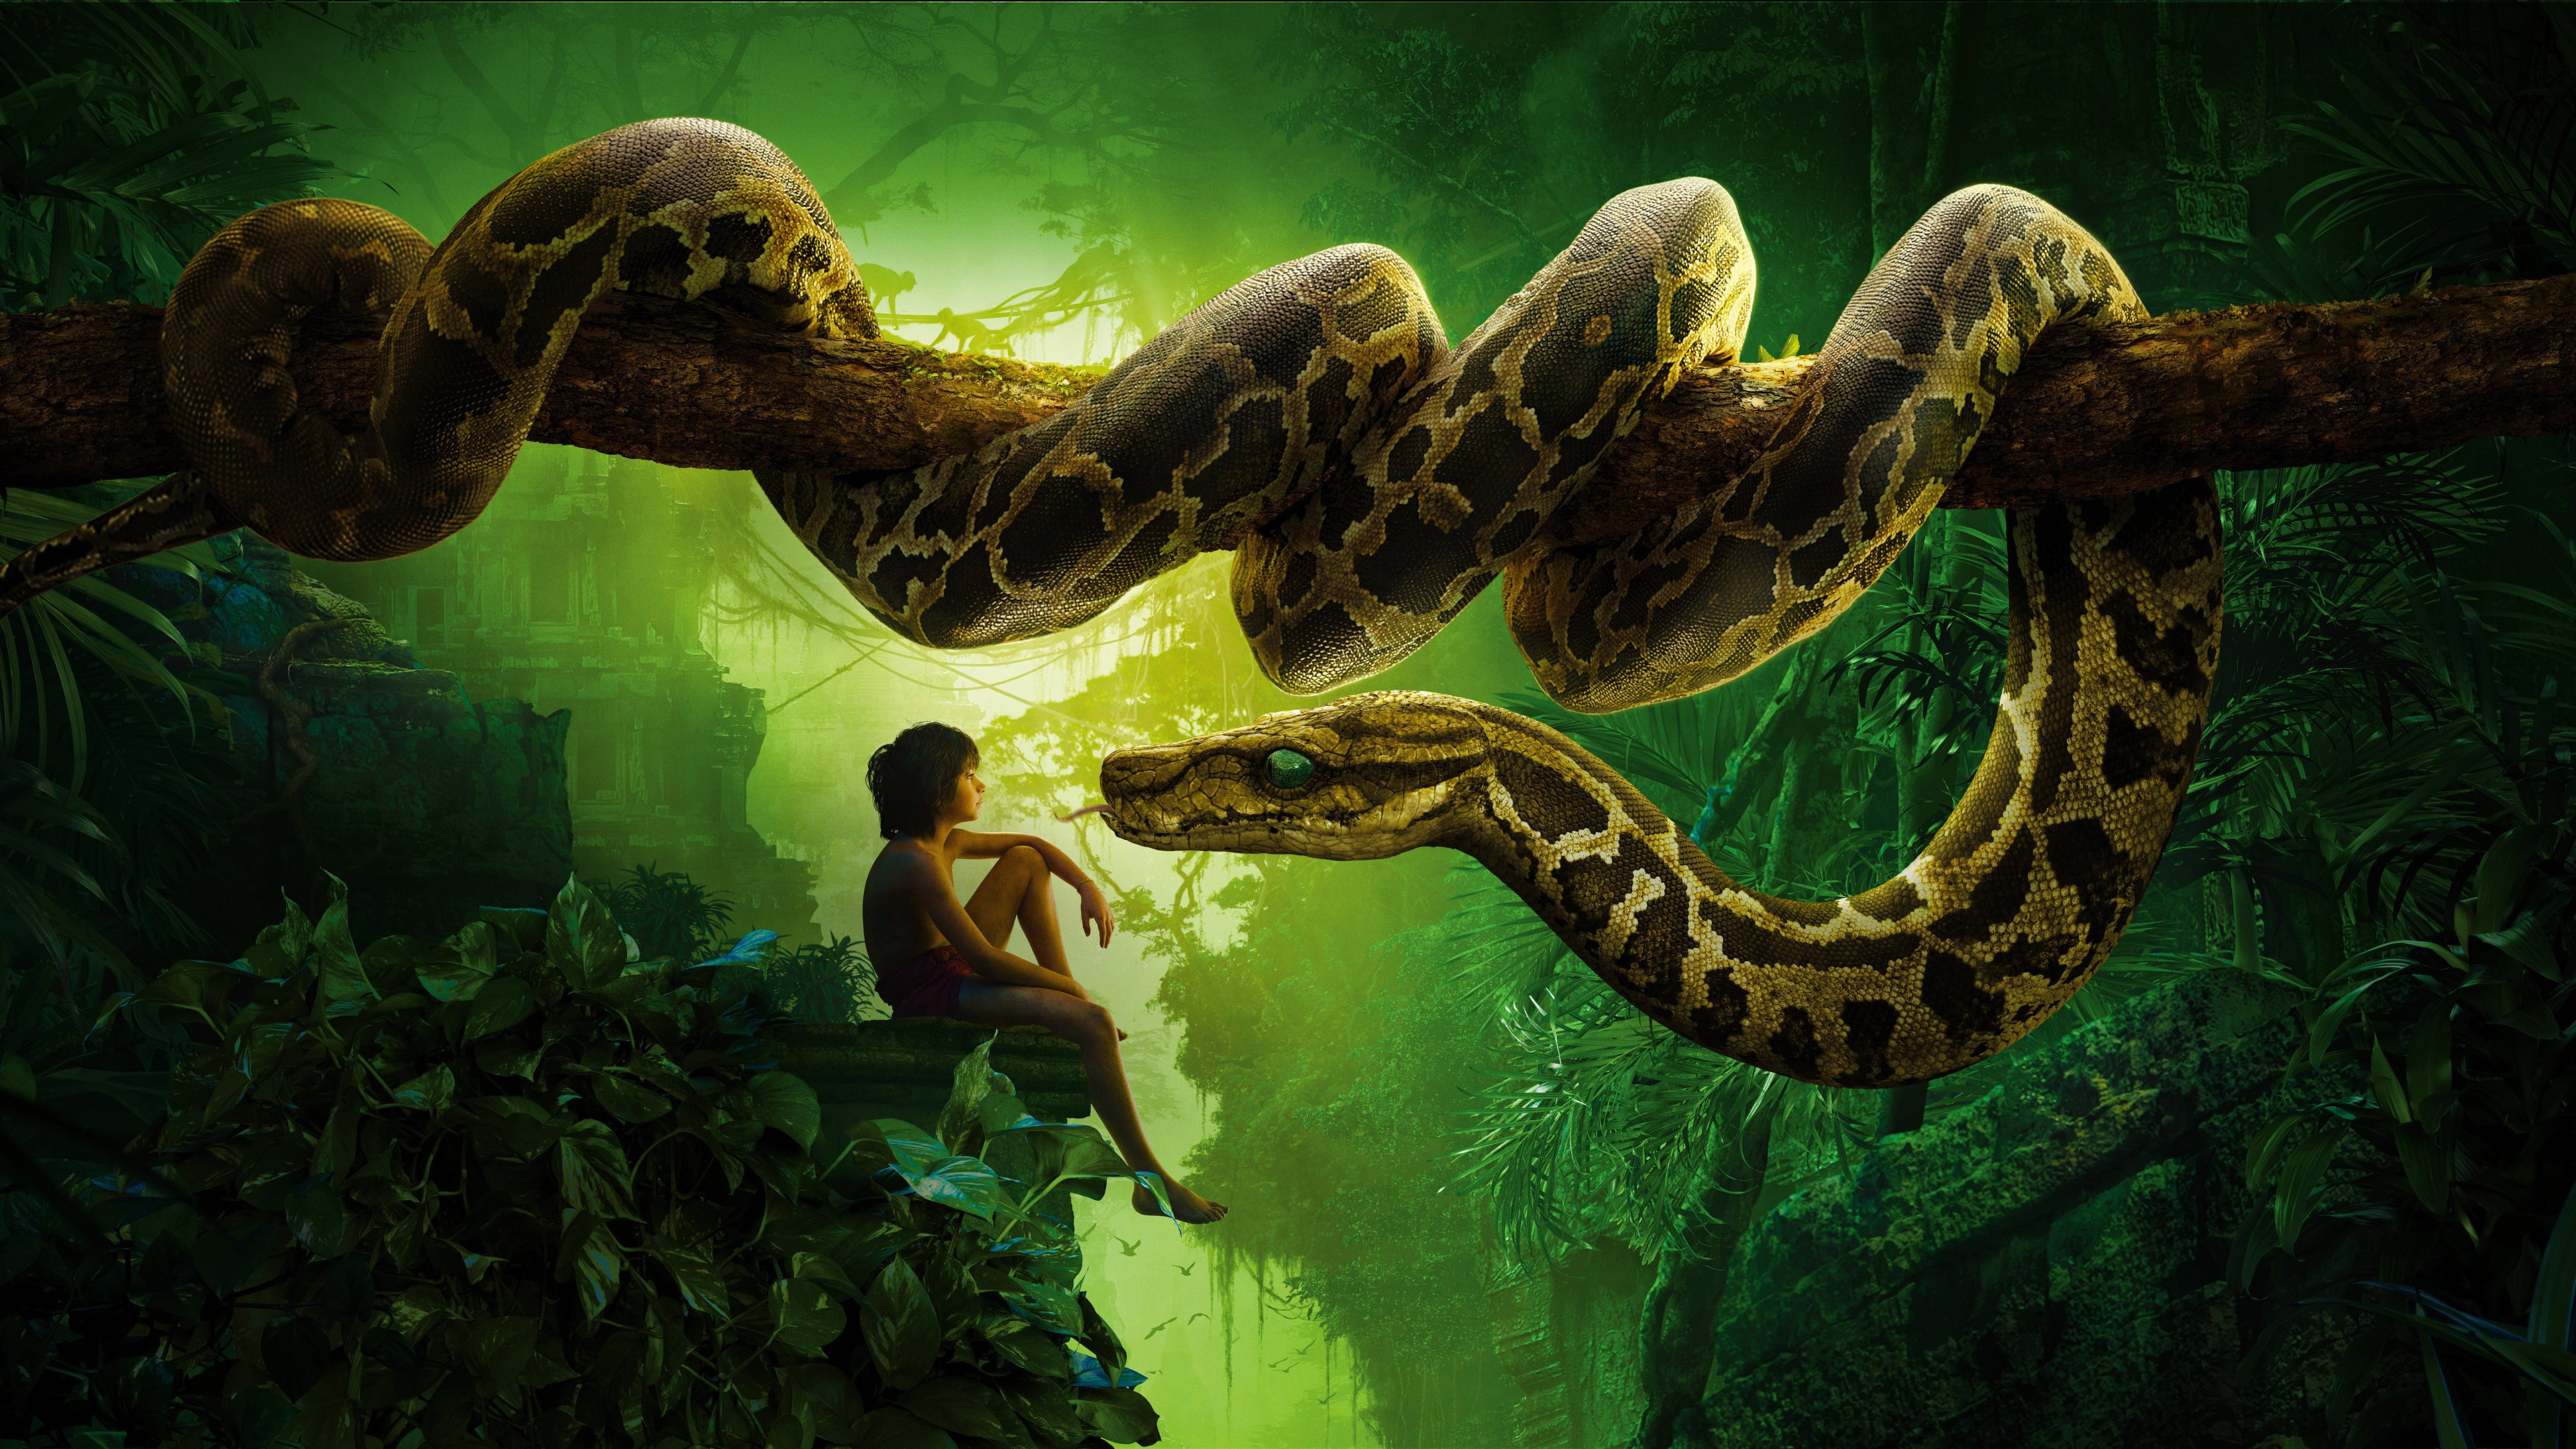 55 the jungle book hd wallpapers | background images - wallpaper abyss